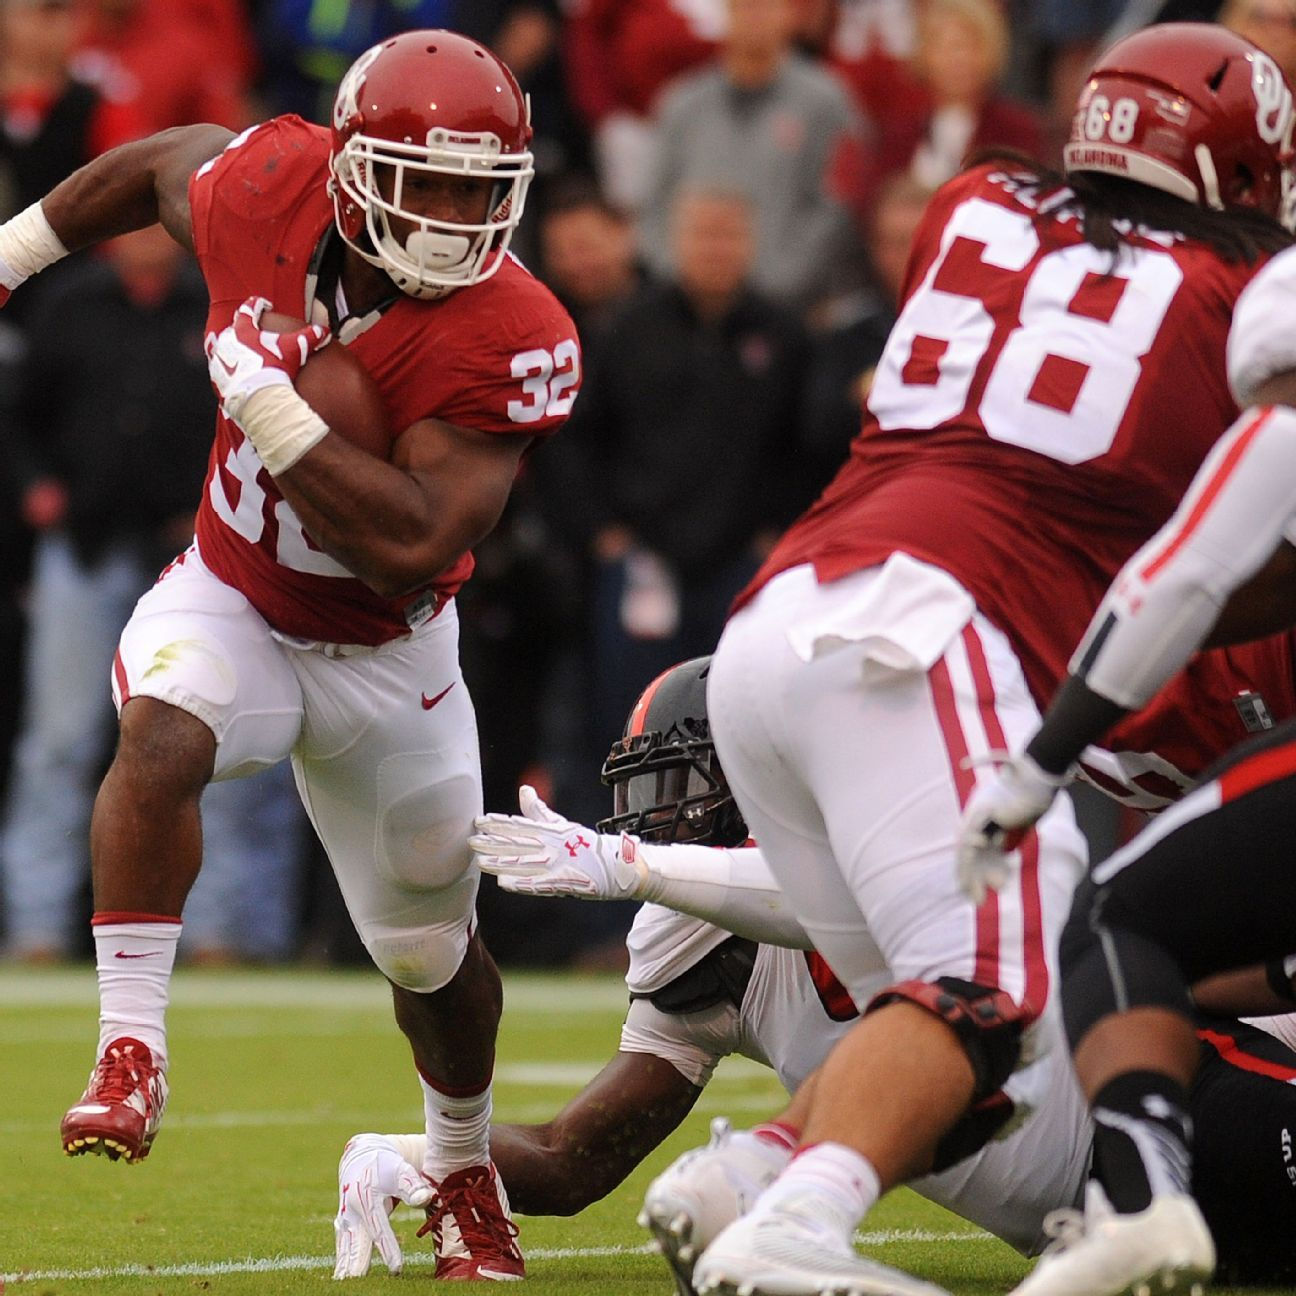 Samaje Perine, Joe Mixon power OU to blowout win over